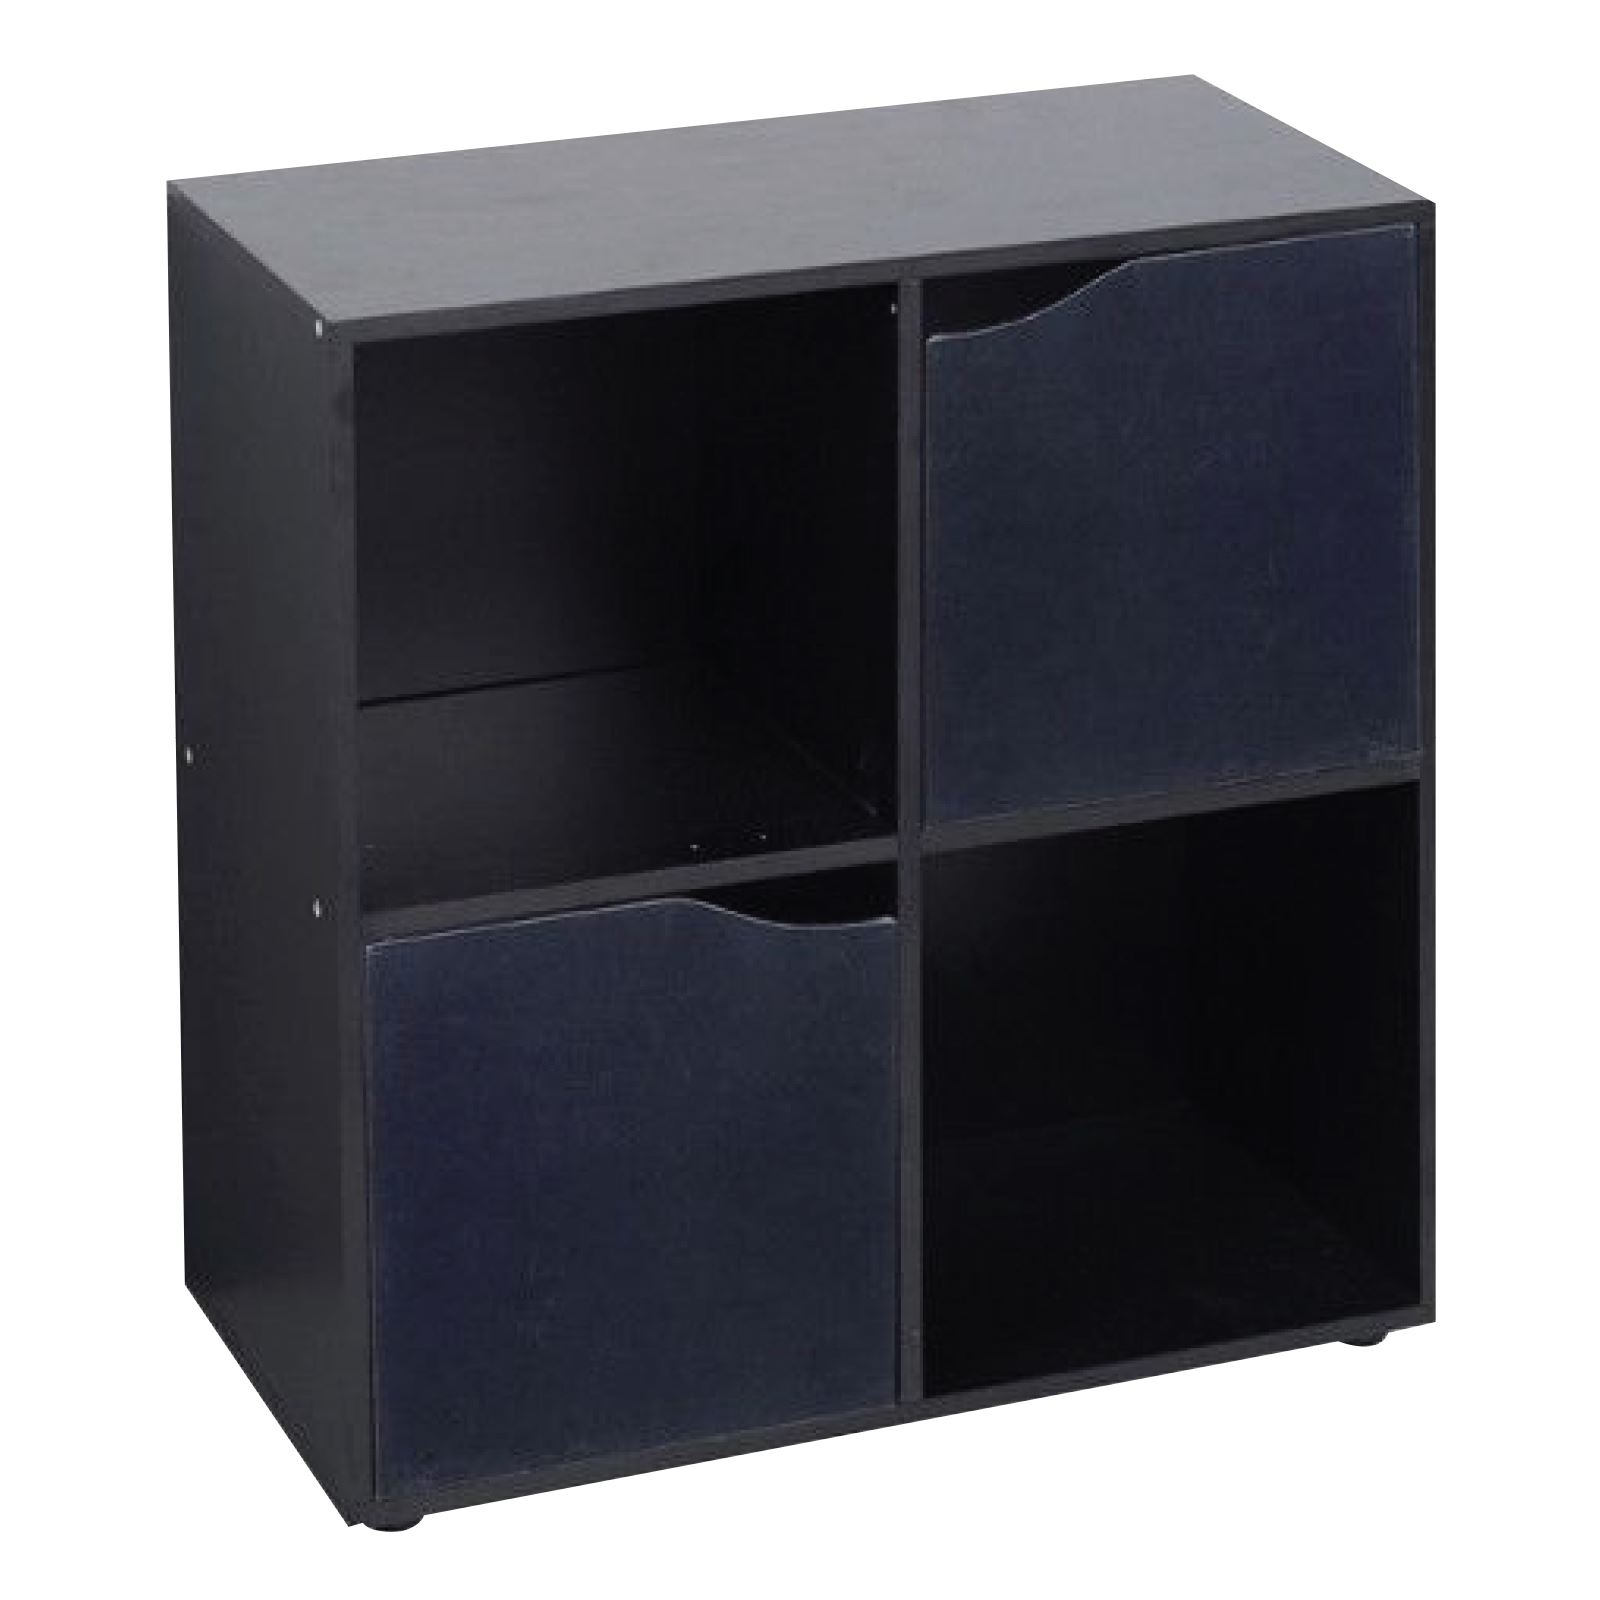 cube storage shelves 4 6 9 cube wooden storage unit bookcase shelving display 28872